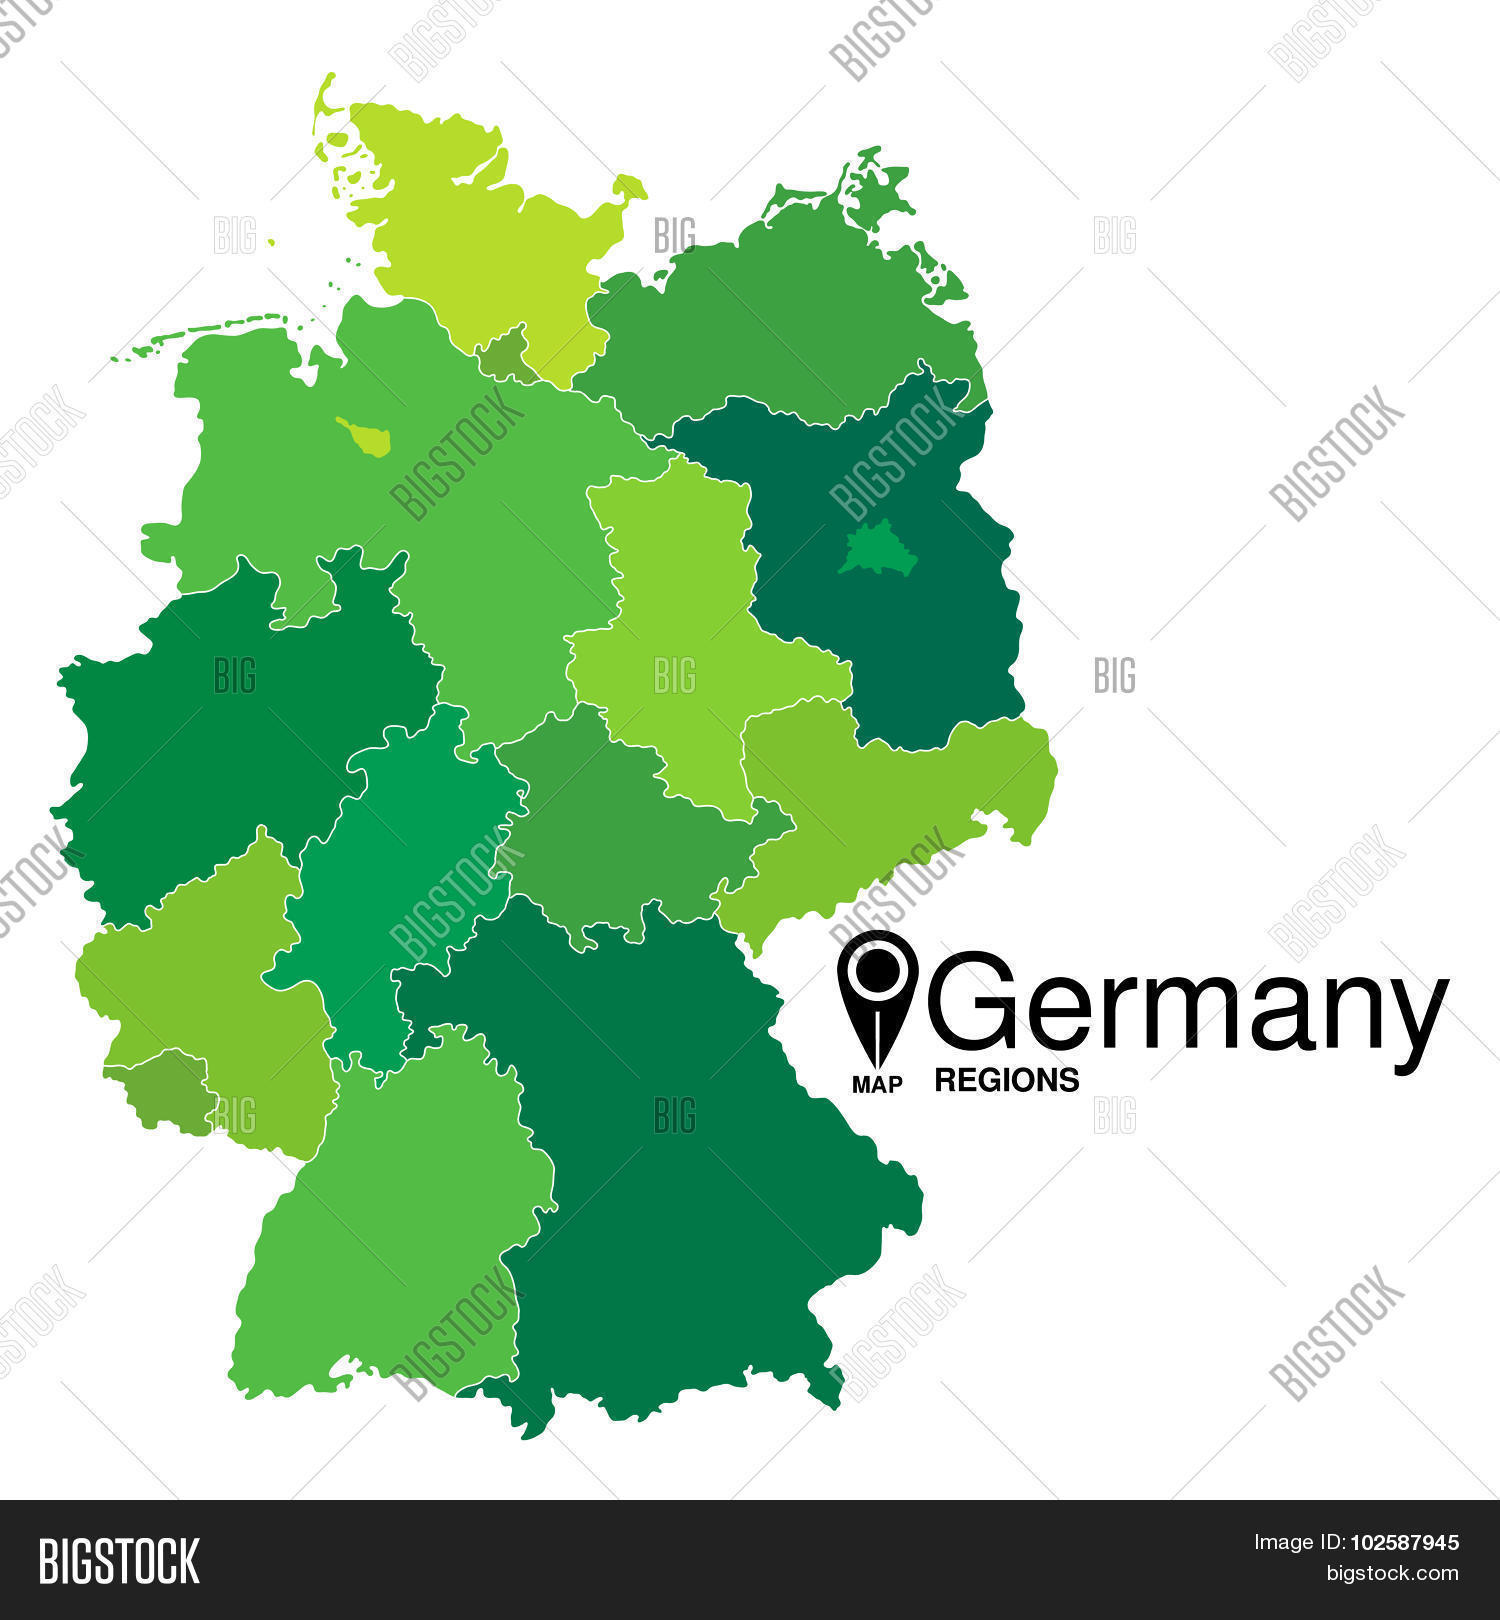 Regions Of Germany Map.Regions Map Germany Vector Photo Free Trial Bigstock